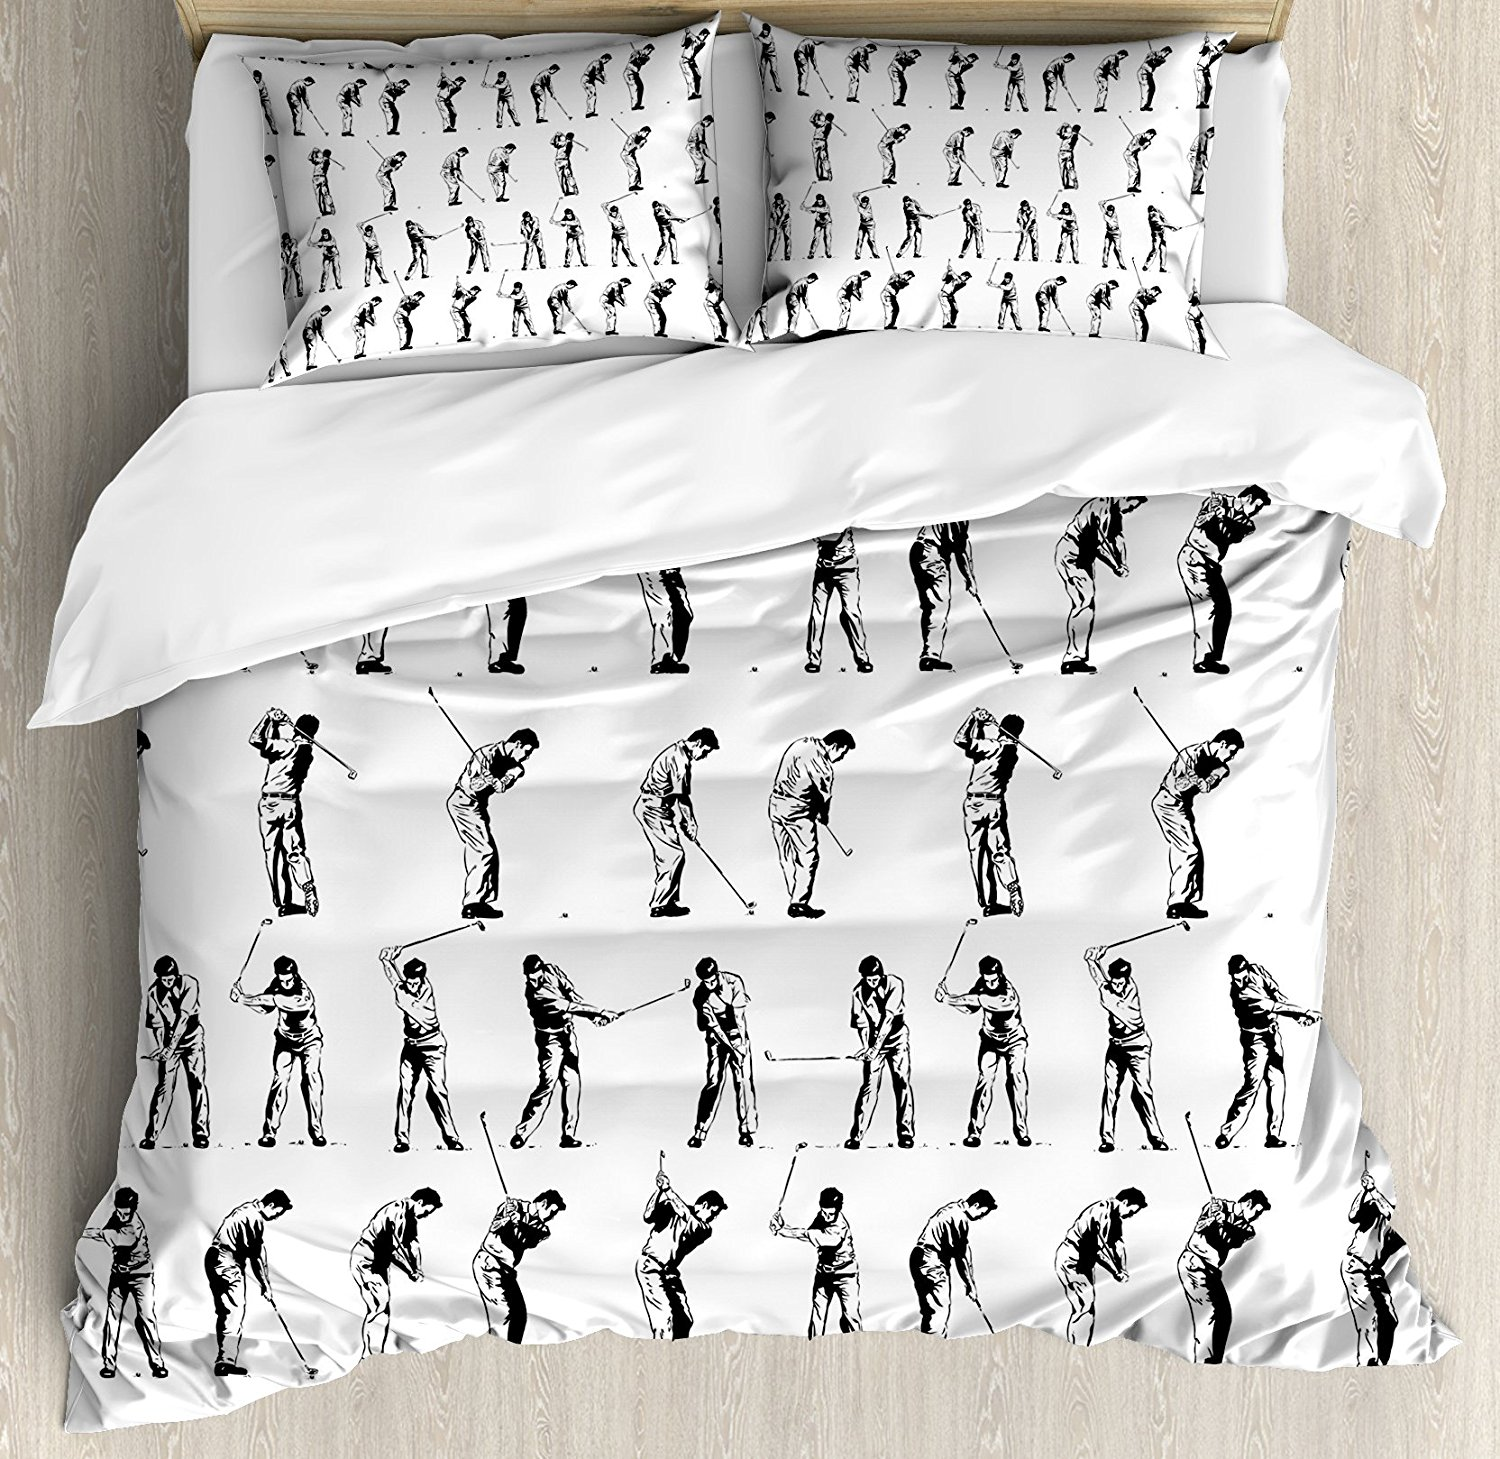 Golf Duvet Cover Set Swing Shown In Four Stages Sports Hobby Themed Sketch Art Storyboard Print 4 Piece Bedding Sets From Home